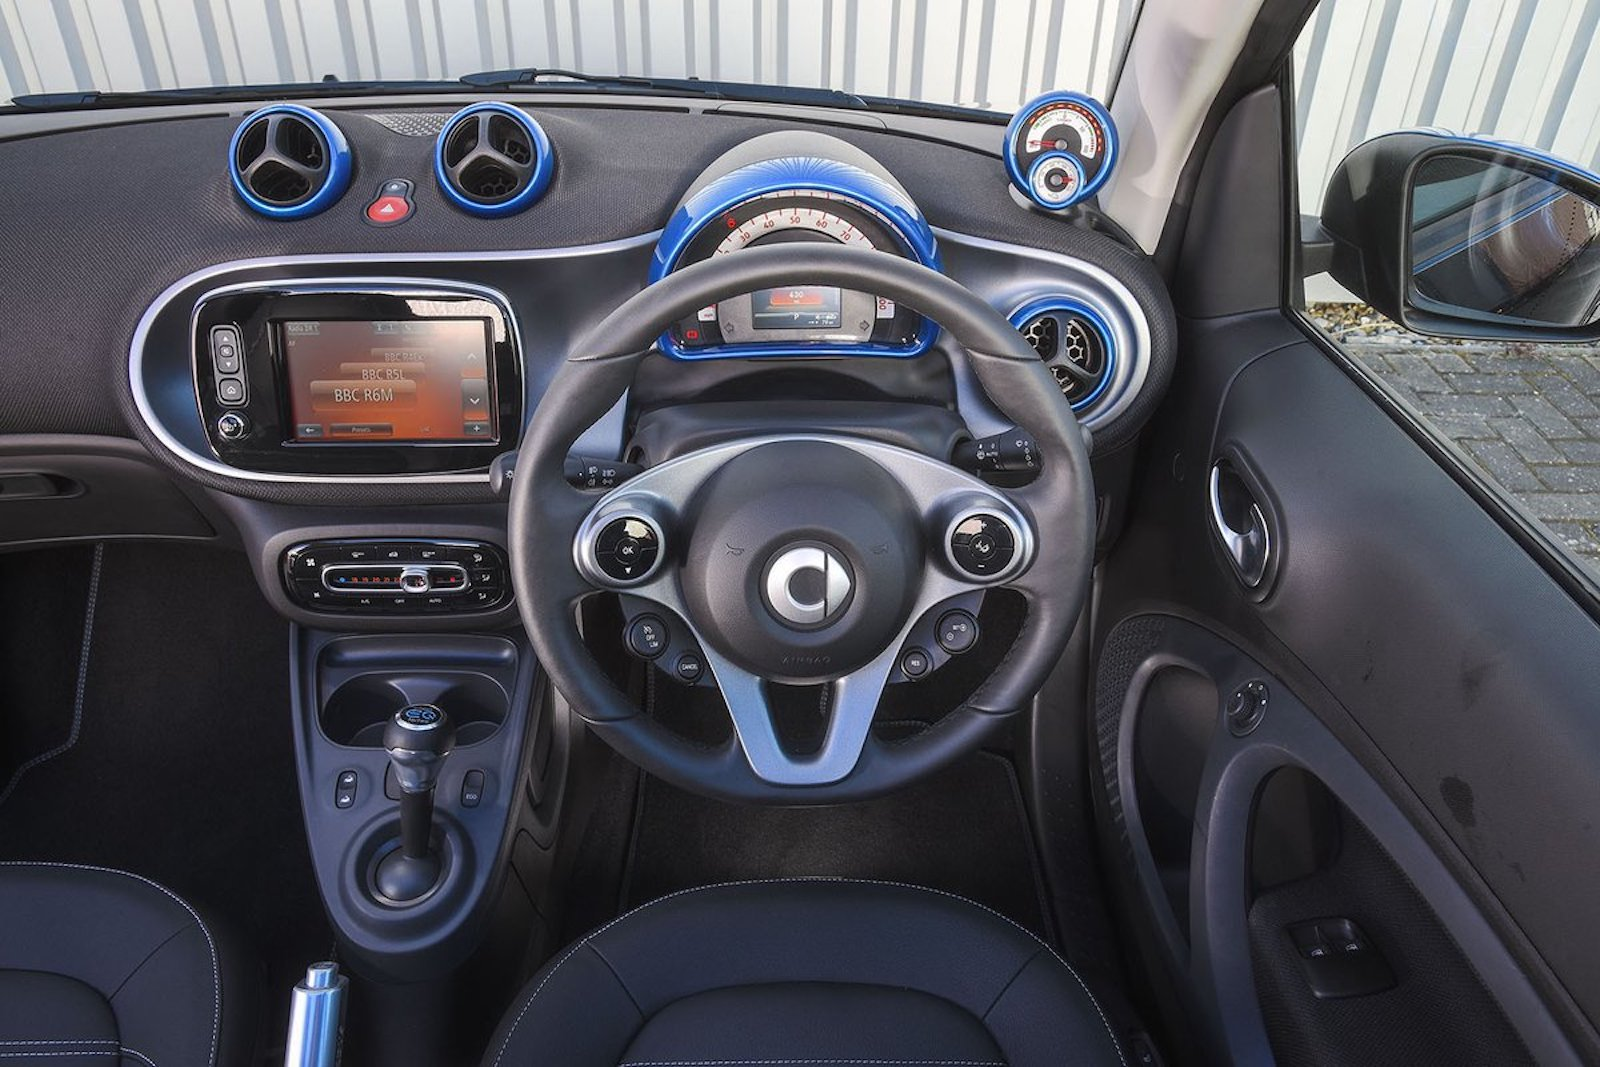 Used Smart ForTwo EQ 2018-present